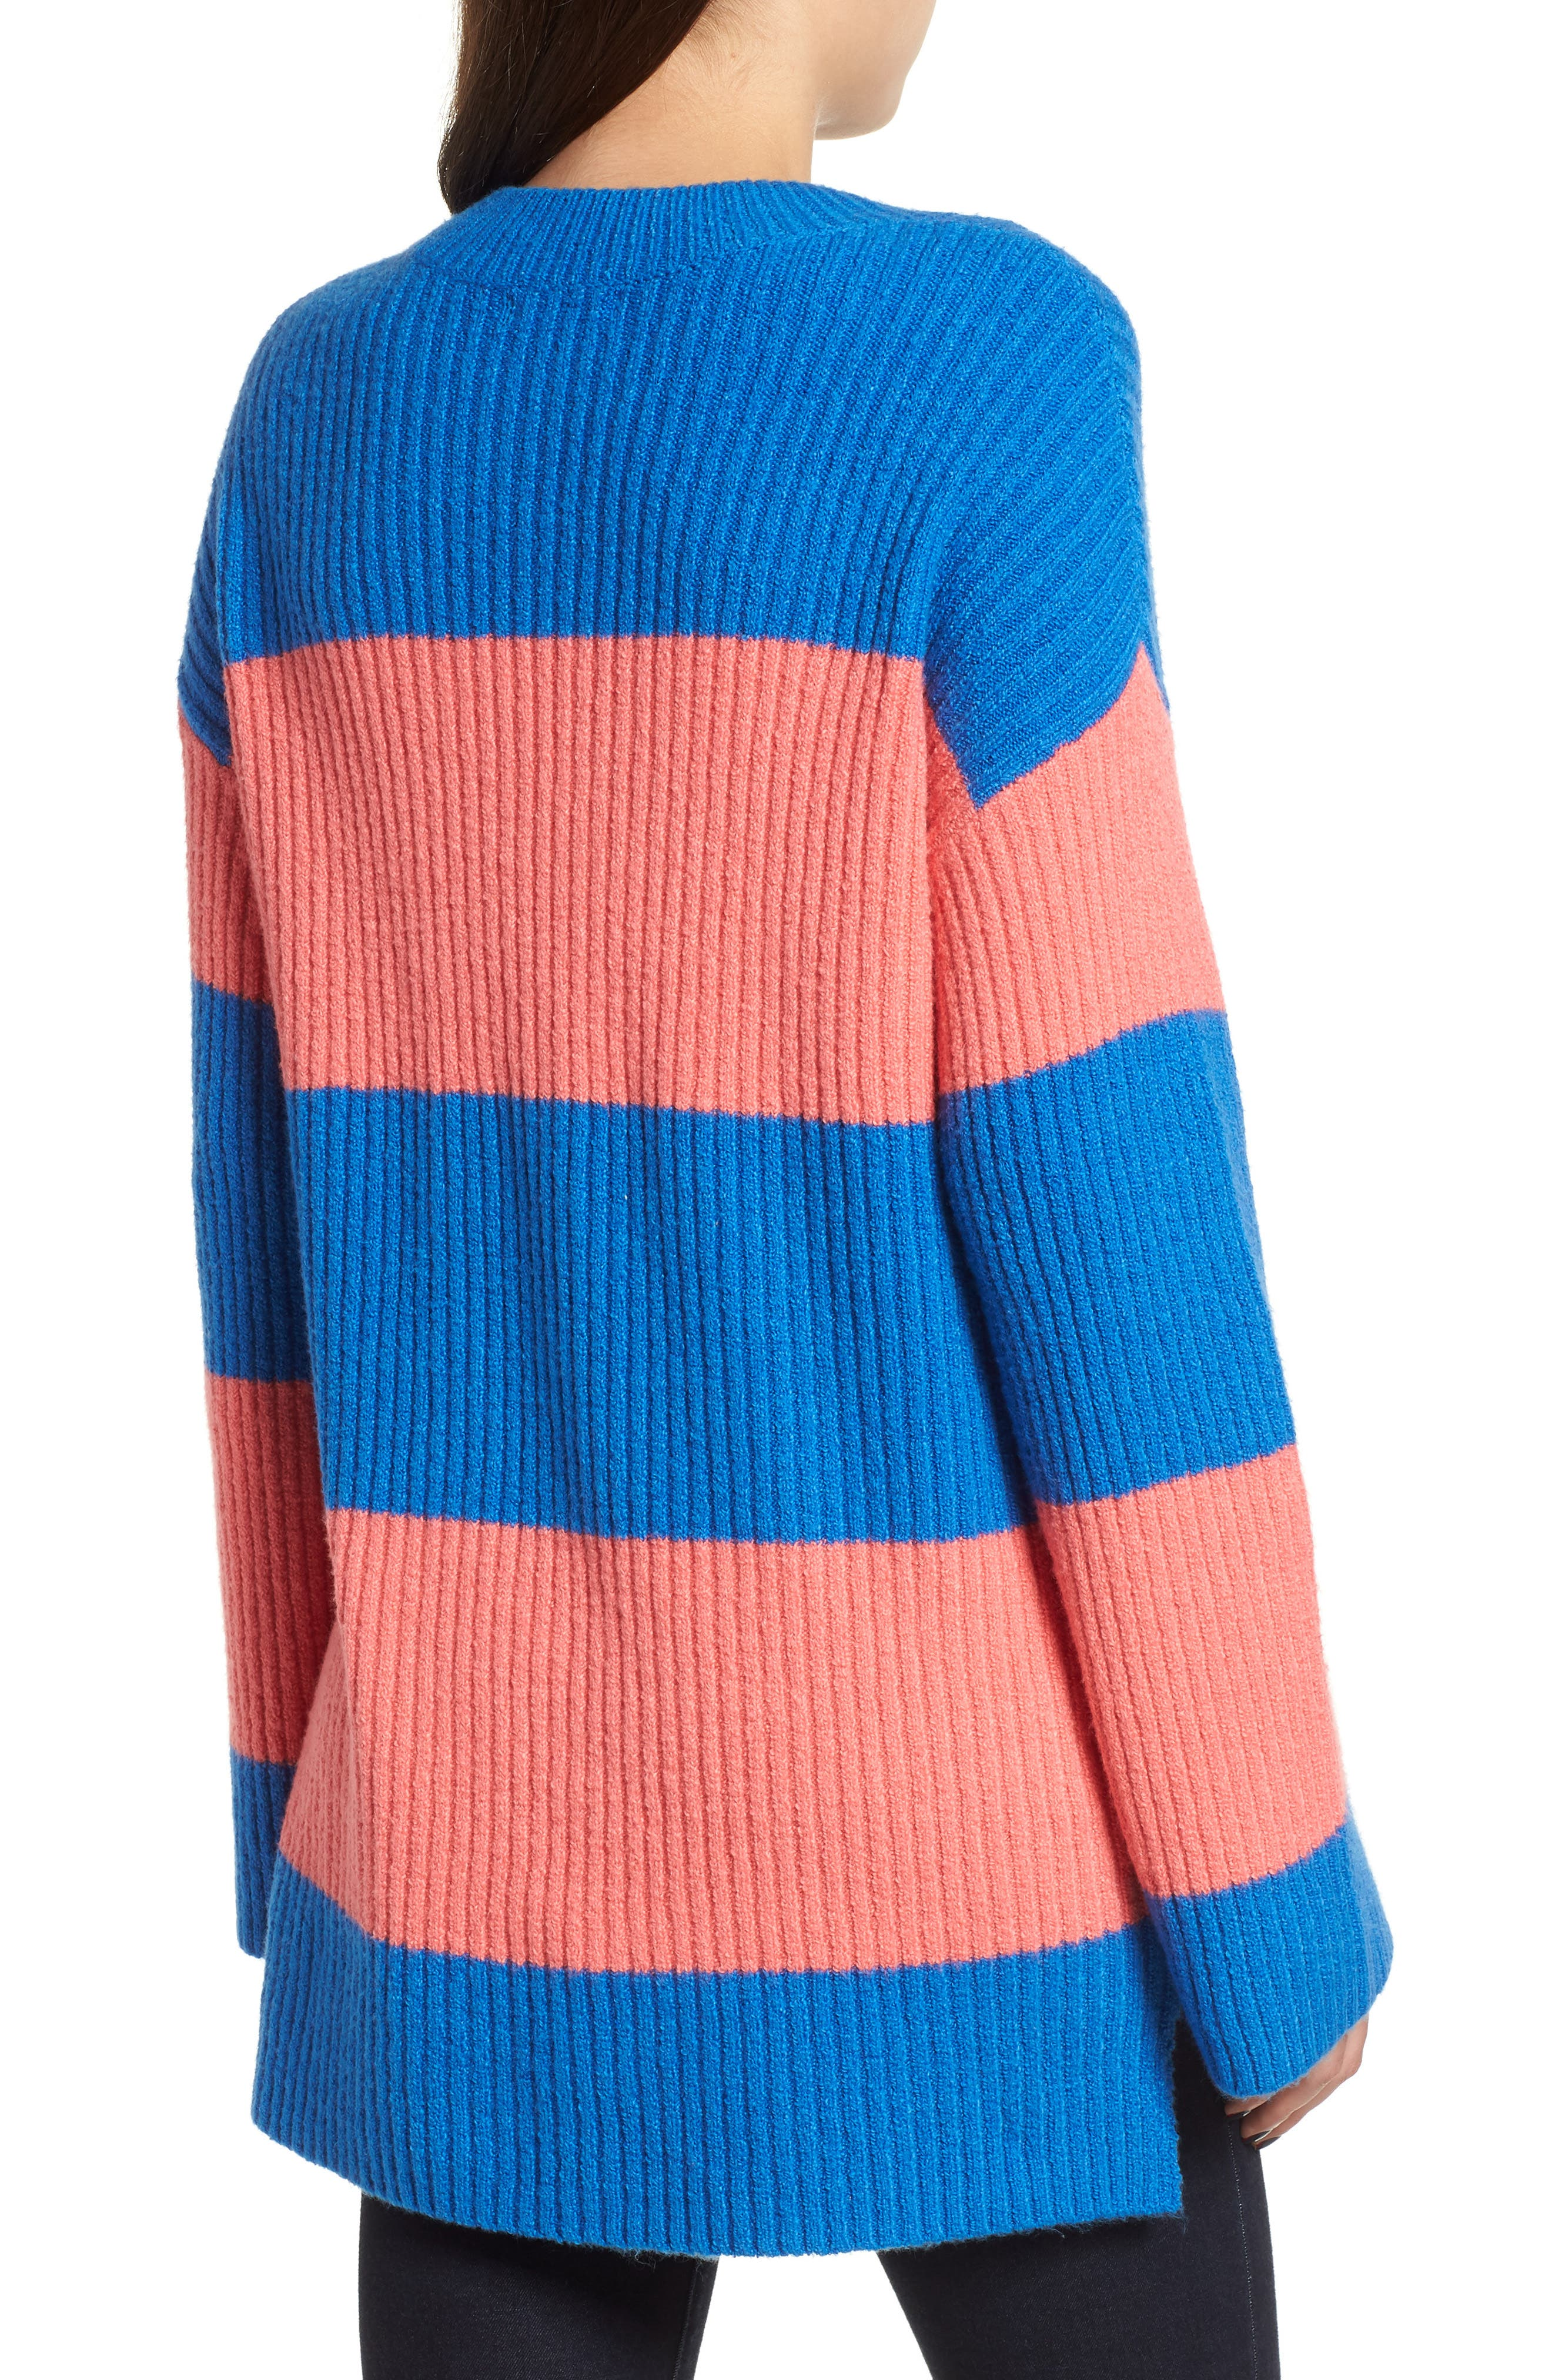 Rugby Stripe Sweater,                             Alternate thumbnail 3, color,                             BLUE BOAT COURTNEY STRIPE